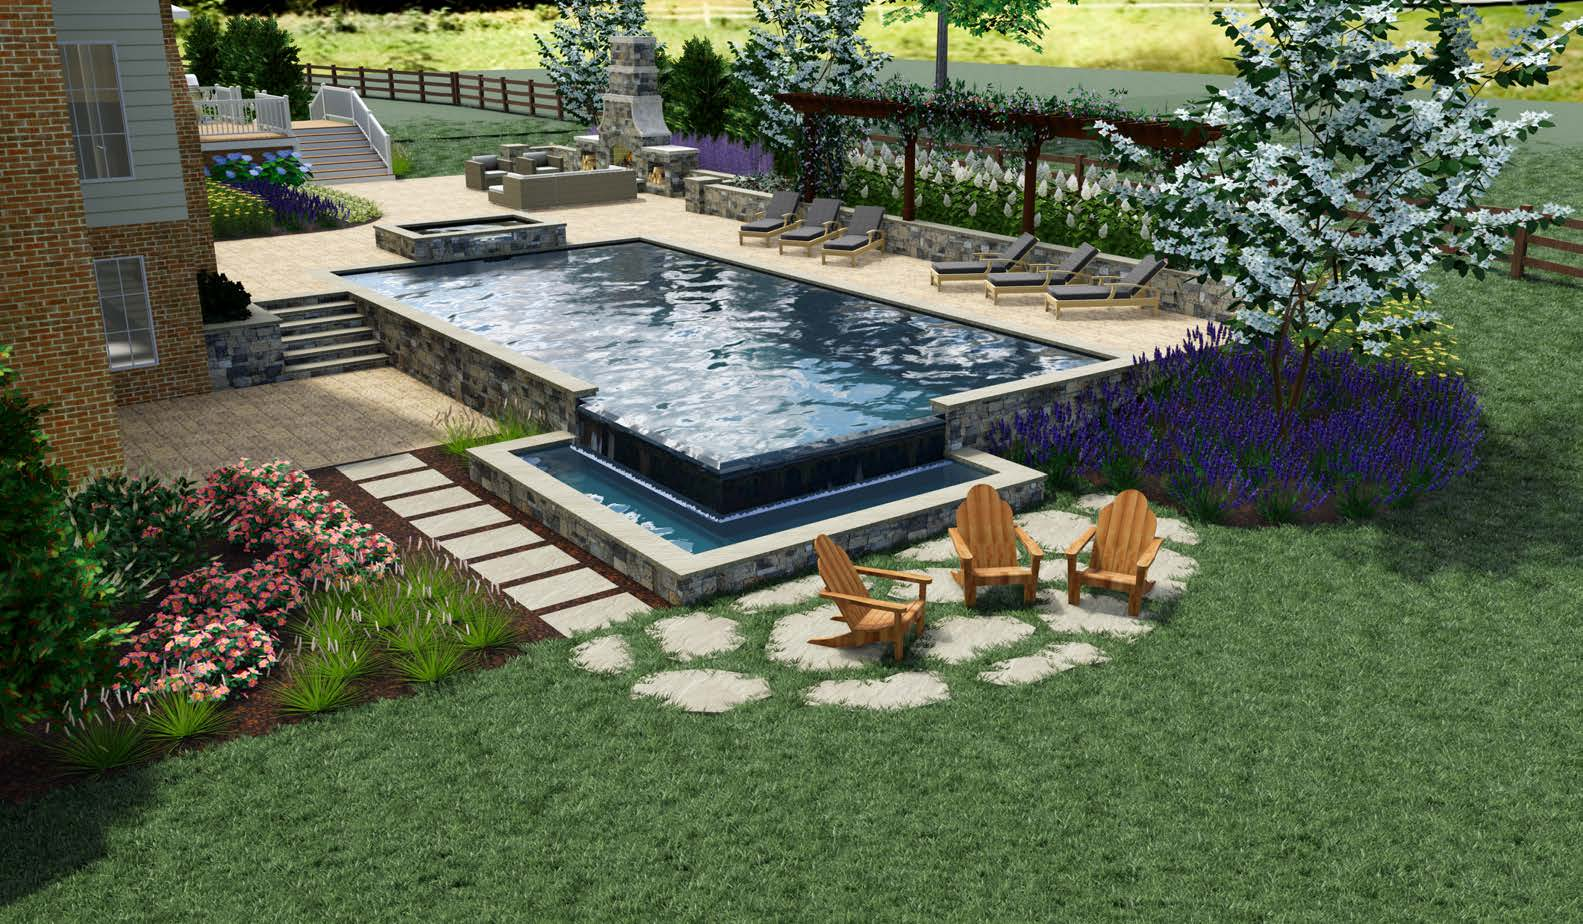 3D pool and landscape design